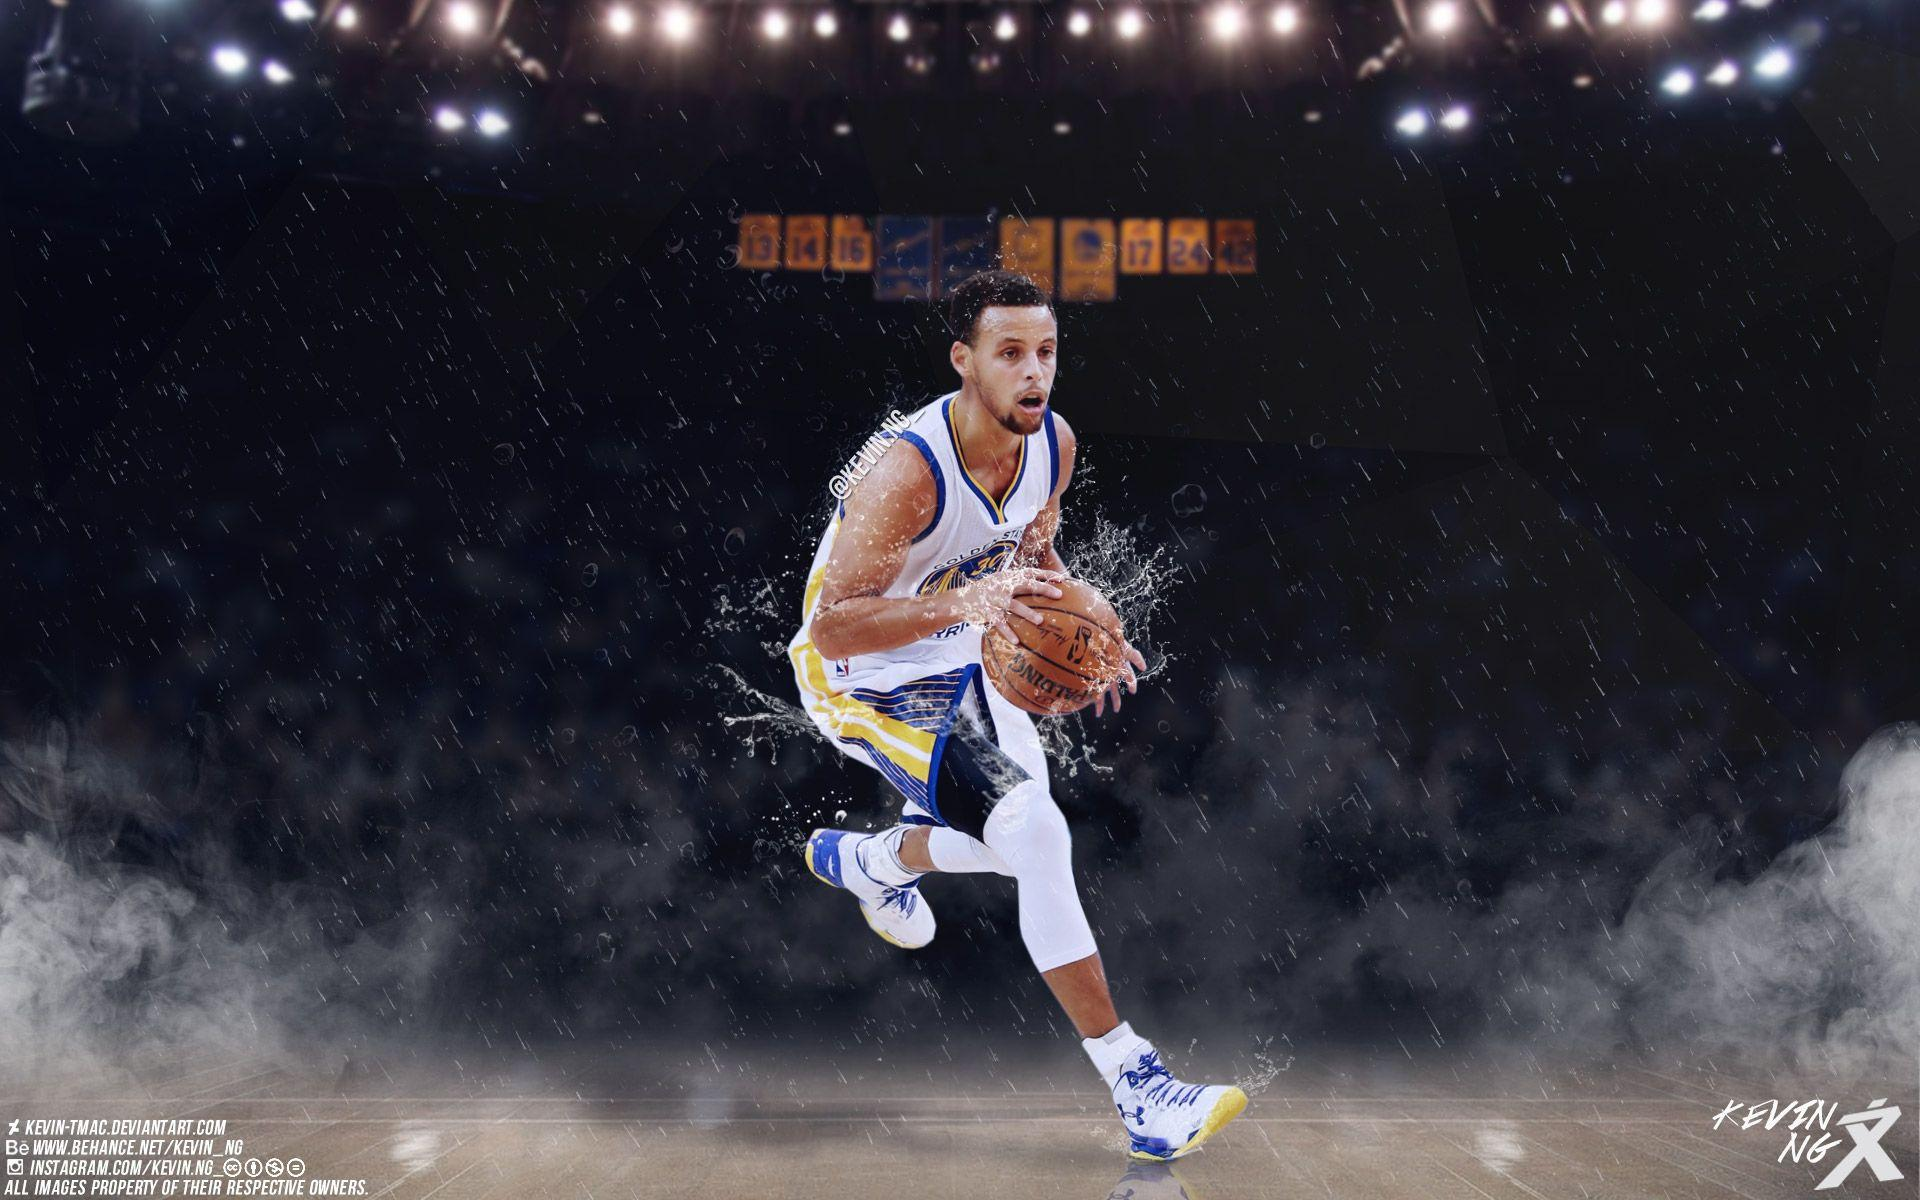 2017 Stephen Curry Wallpapers